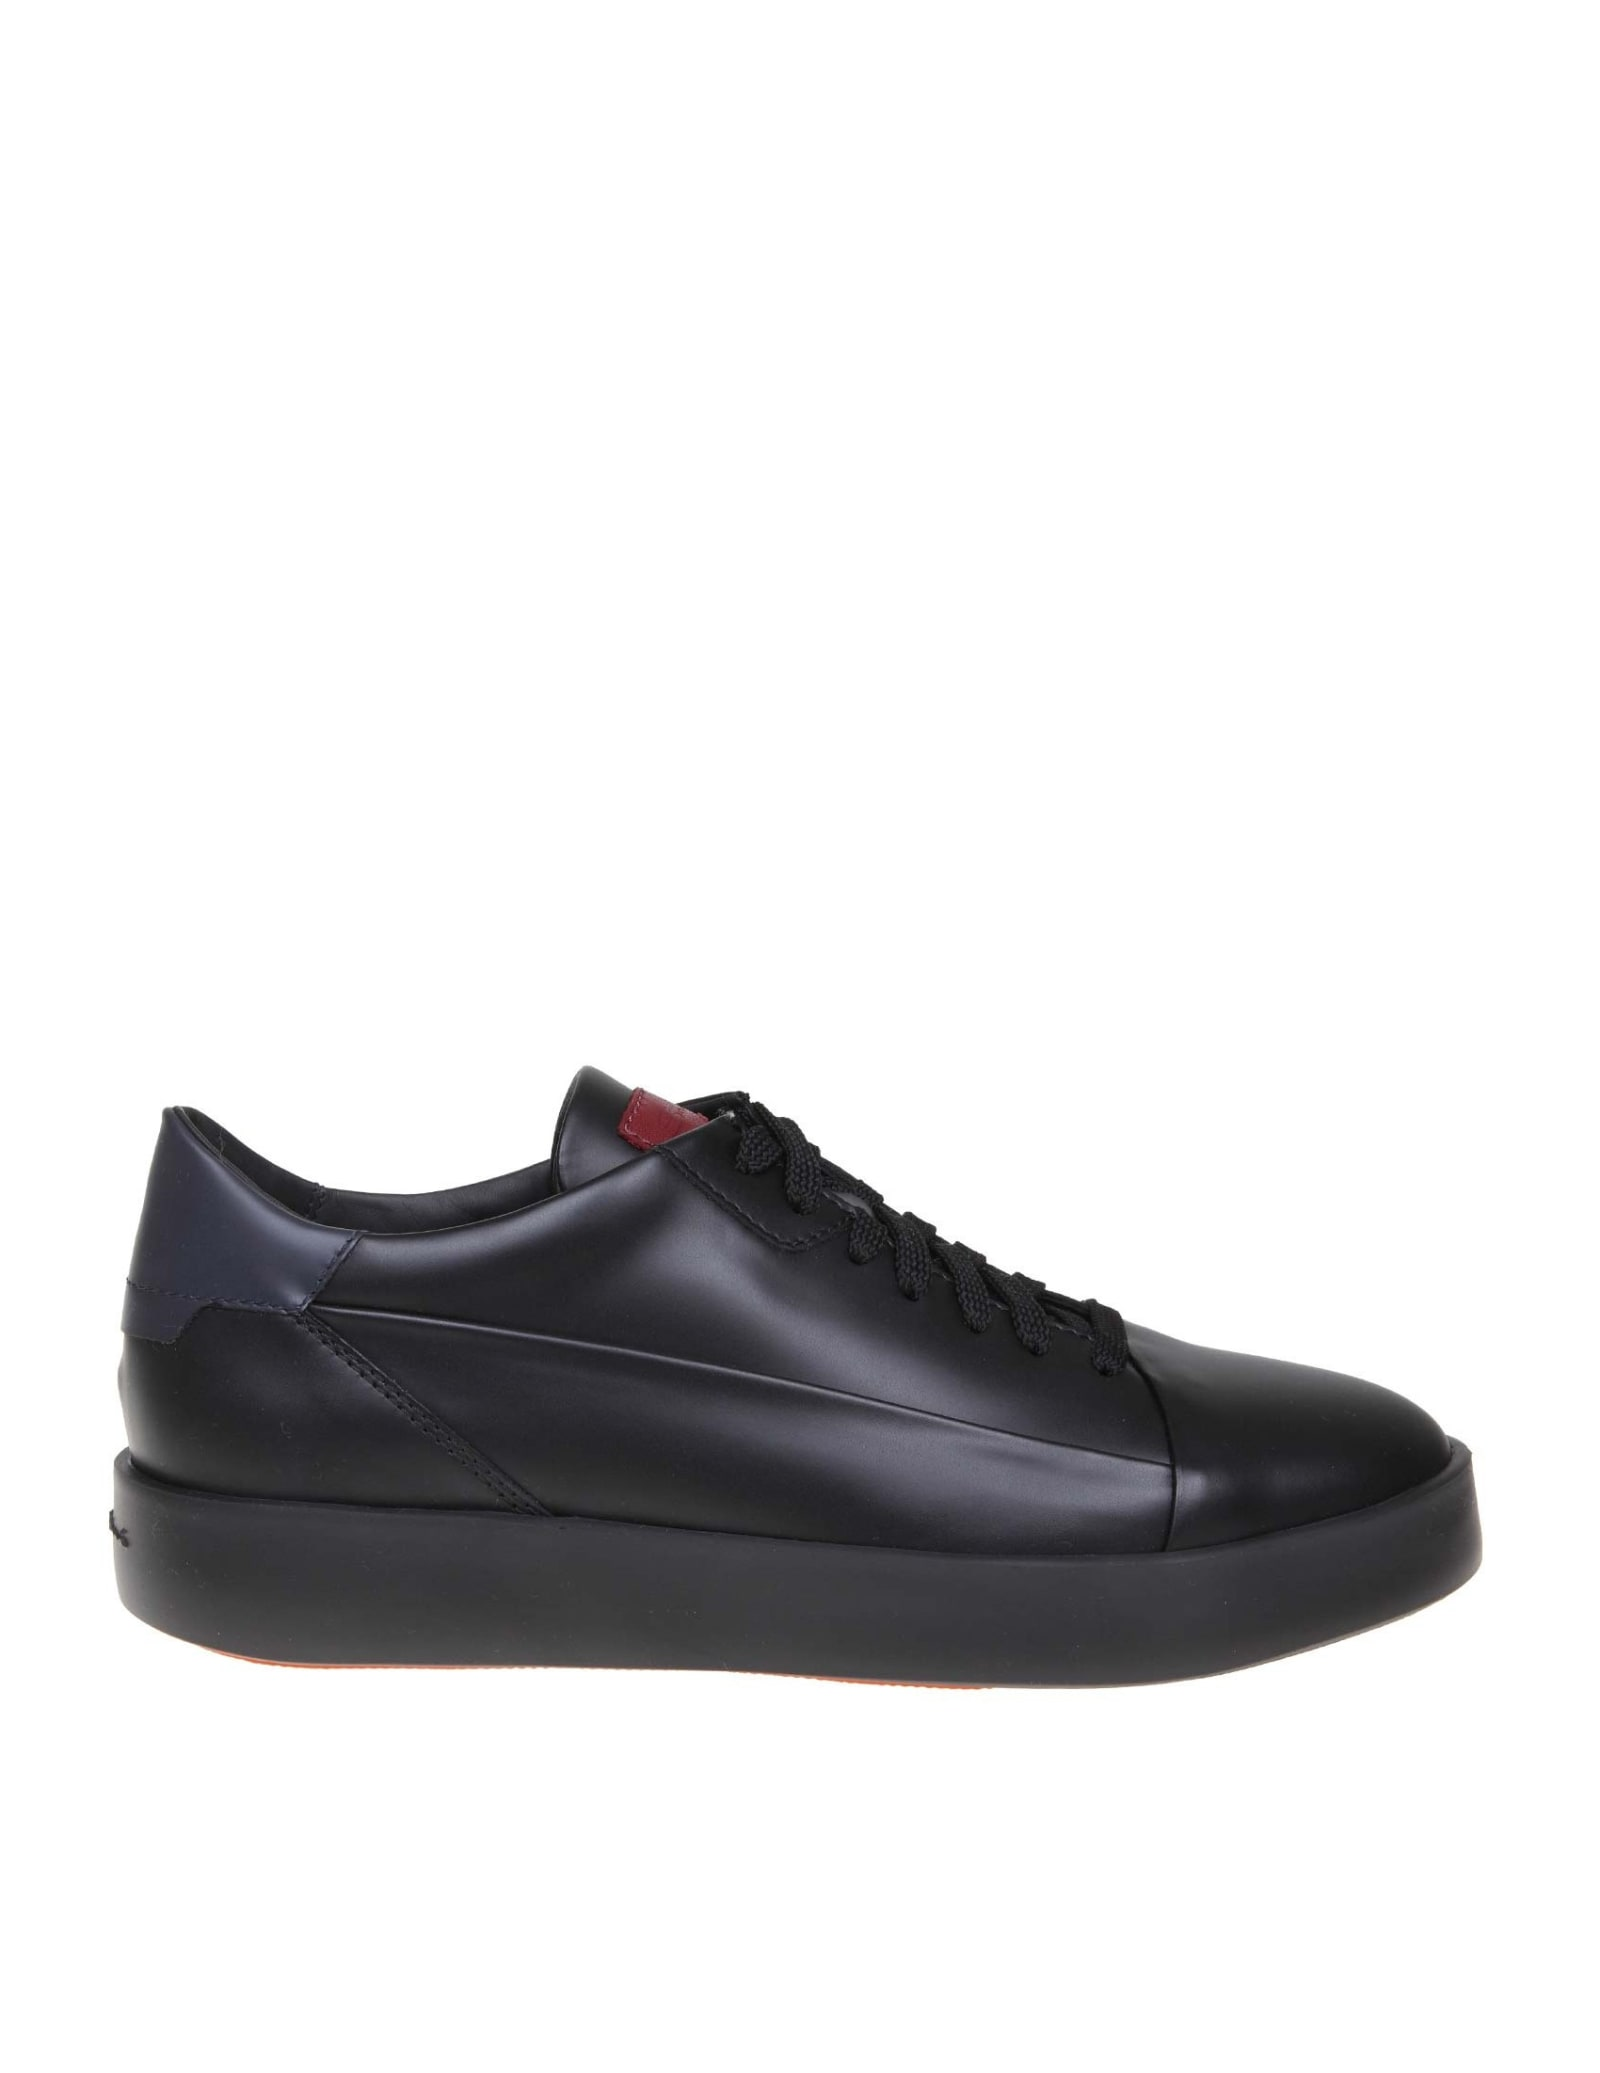 superior quality fb4b8 6badc Santoni Sneakers Leather Lace-up